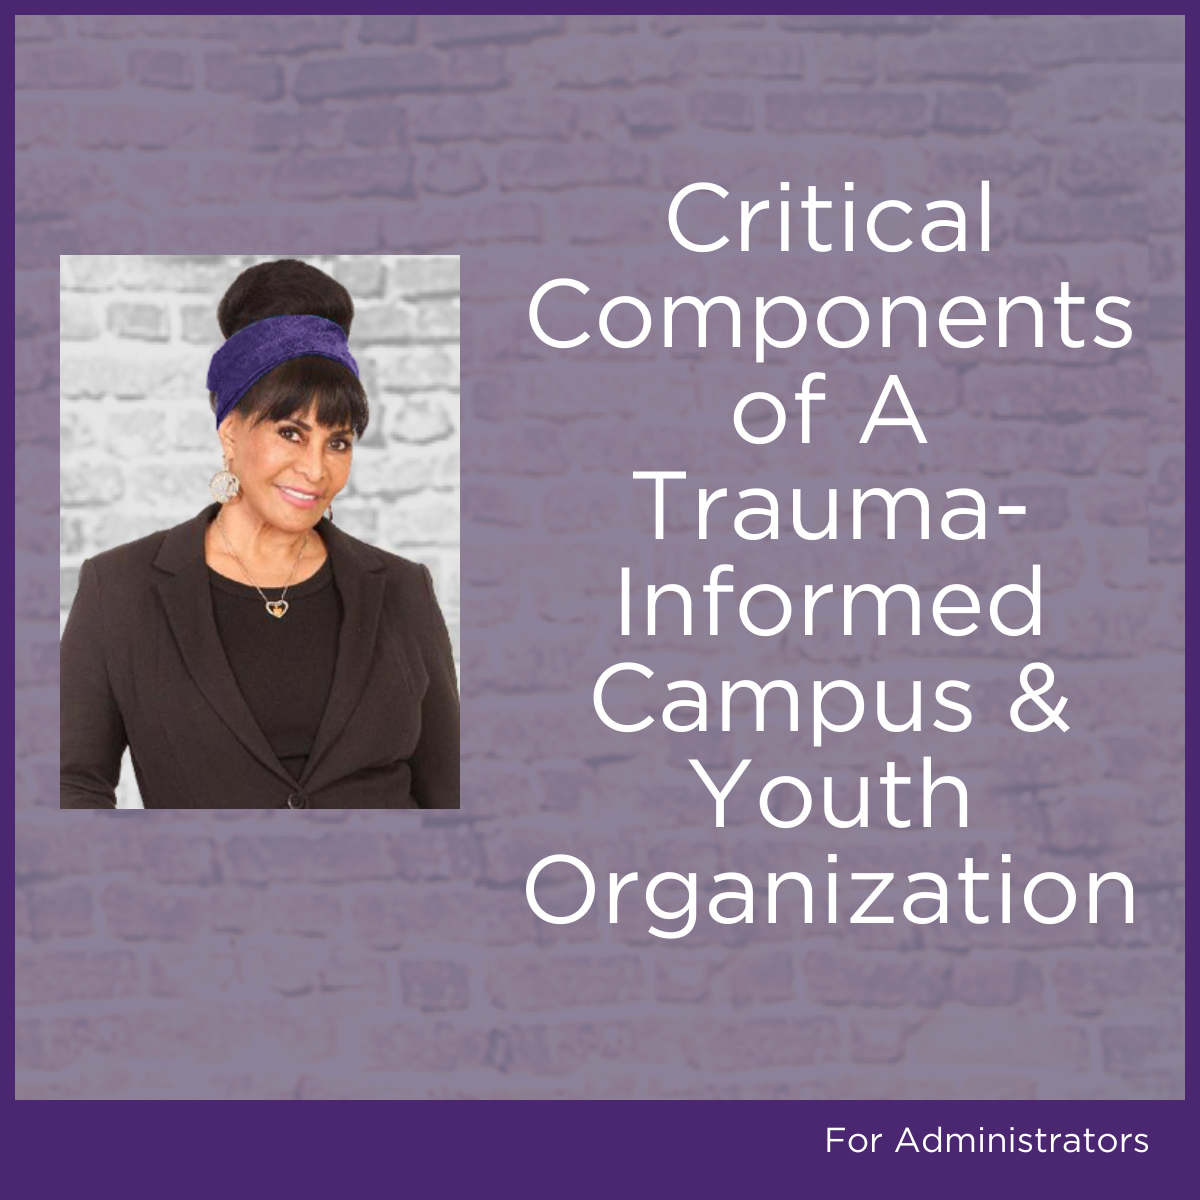 Critical Components Of A Trauma-Informed Campus & Youth Organization